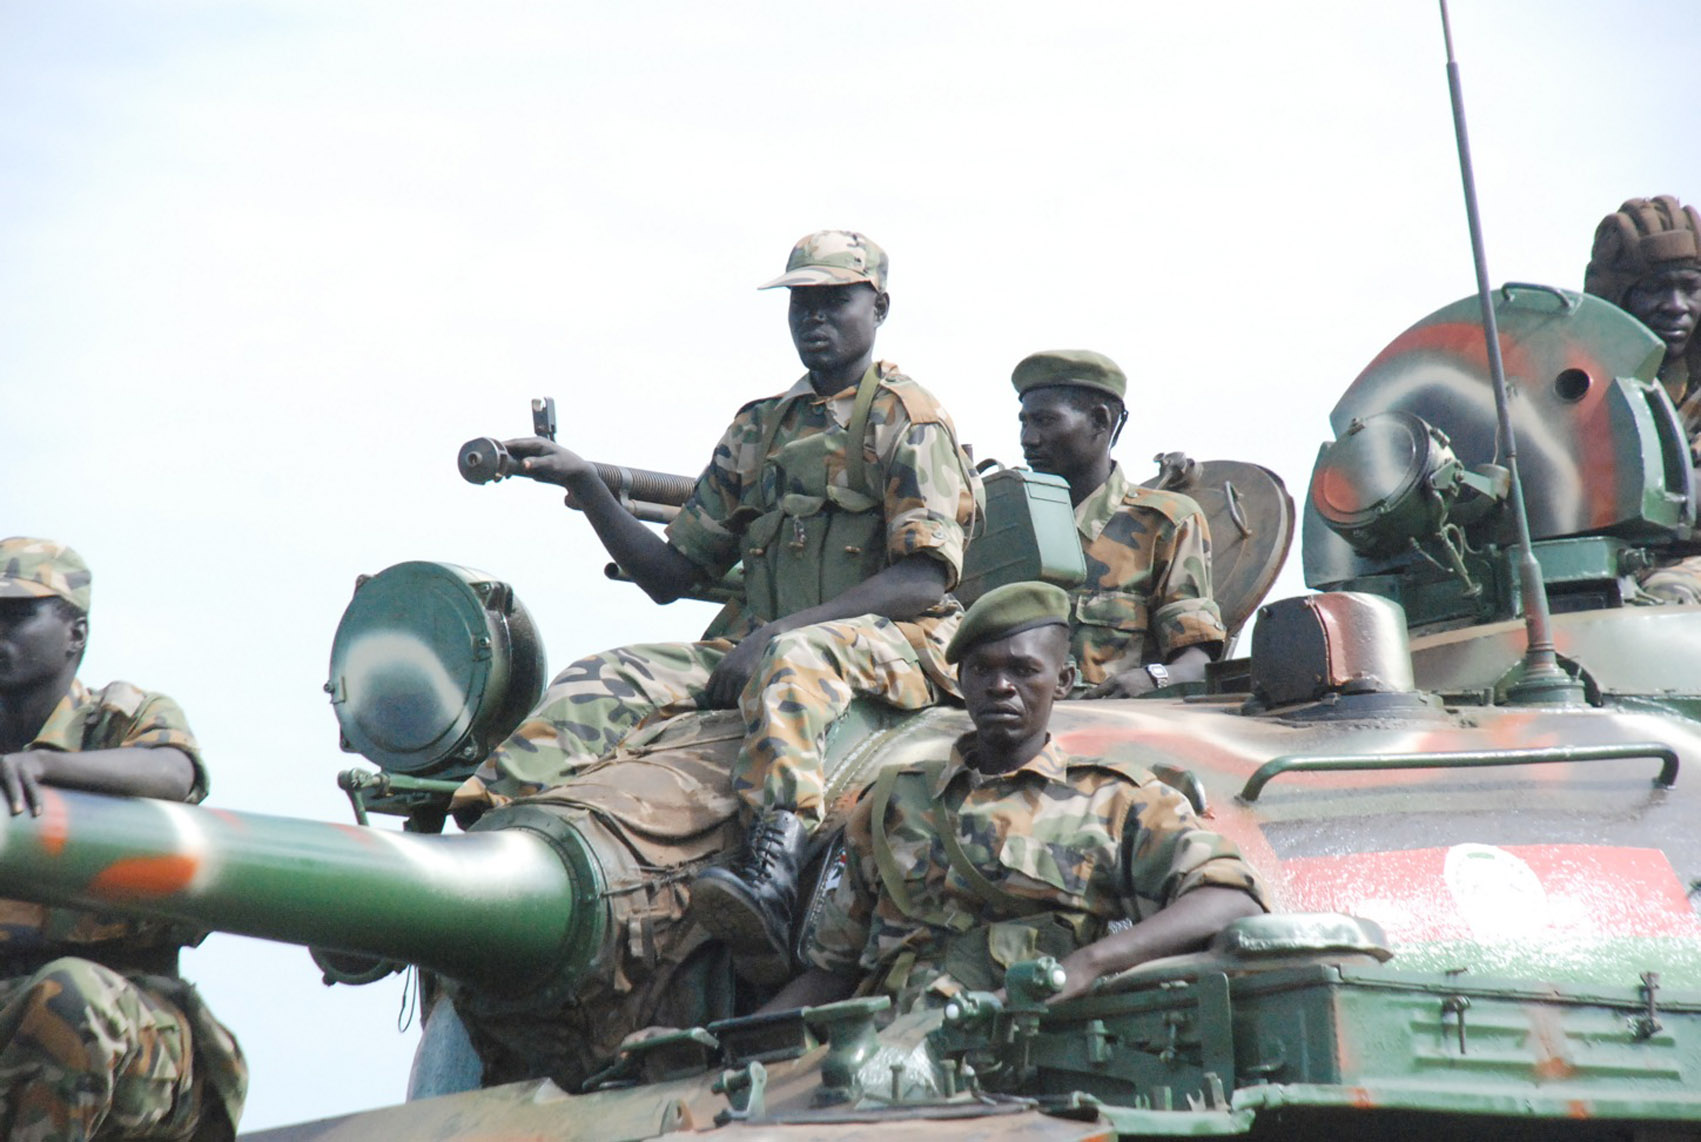 Southern Sudanese soldiers from the Sudan People's Liberation Army (SPLA) parade through Juba in May 2009 for celebrations to mark the 26th anniversary of the start of Sudan's civil war